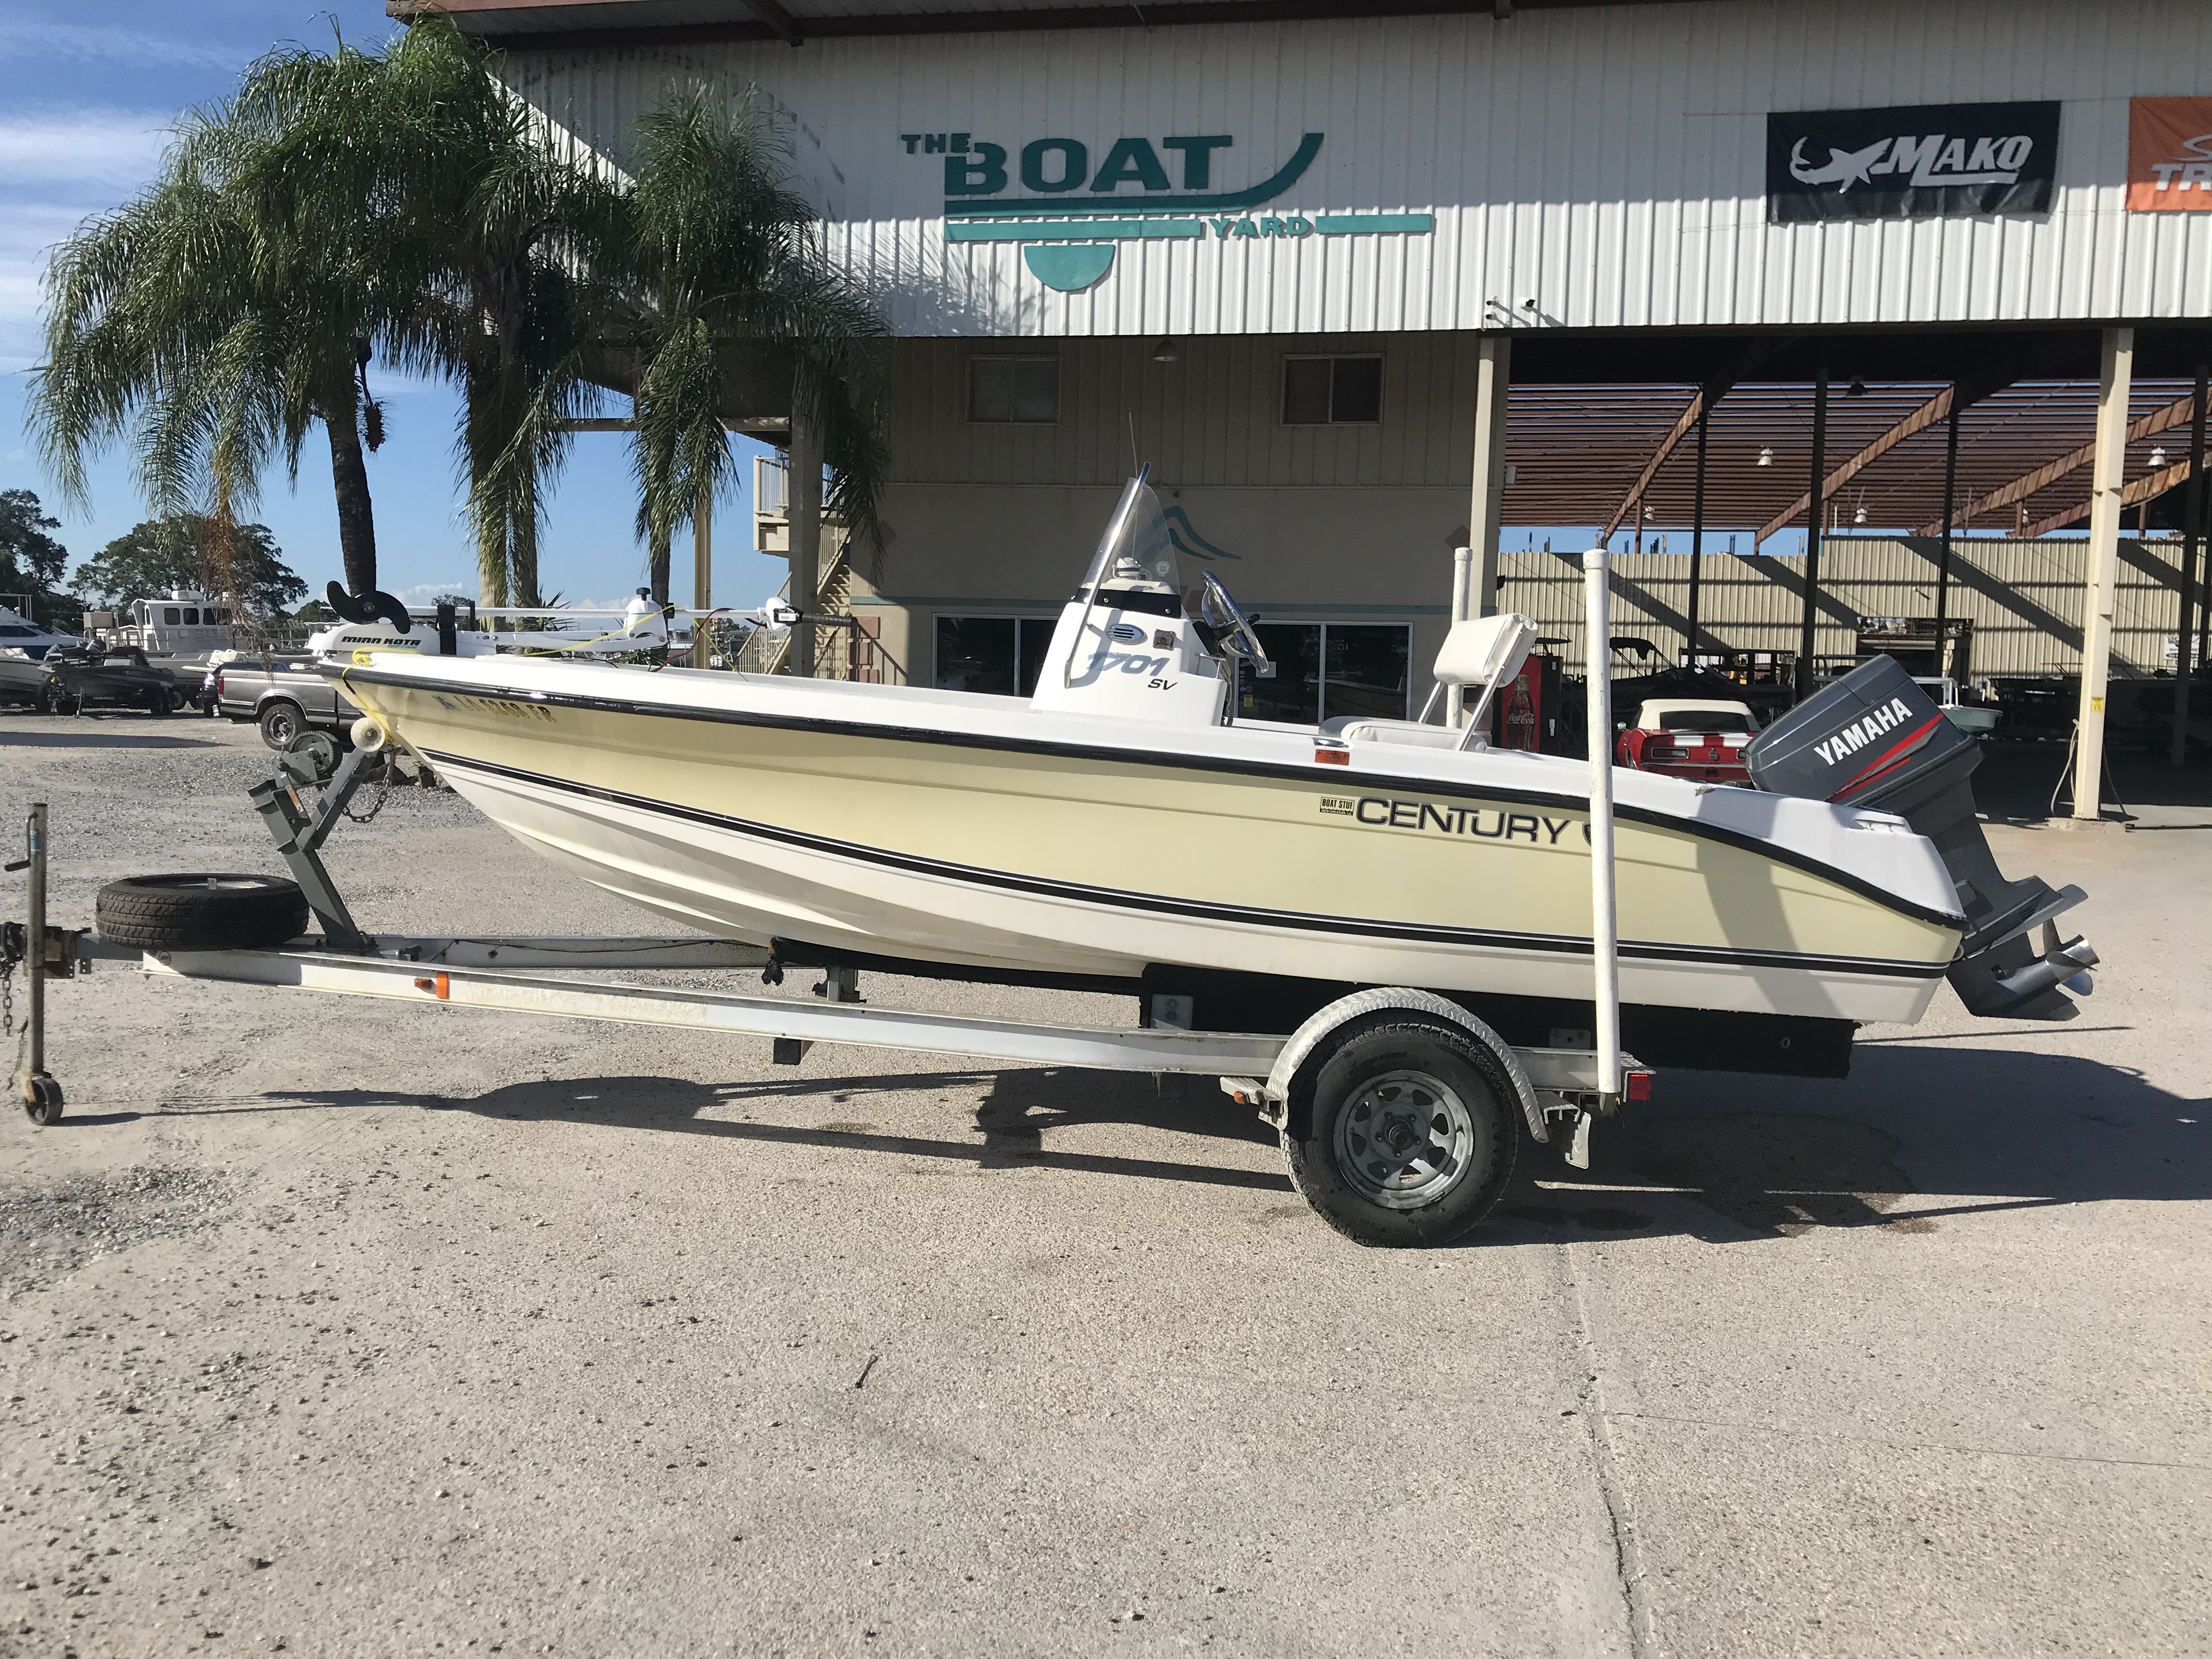 2007 Century boat for sale, model of the boat is 1701 SV & Image # 1 of 8